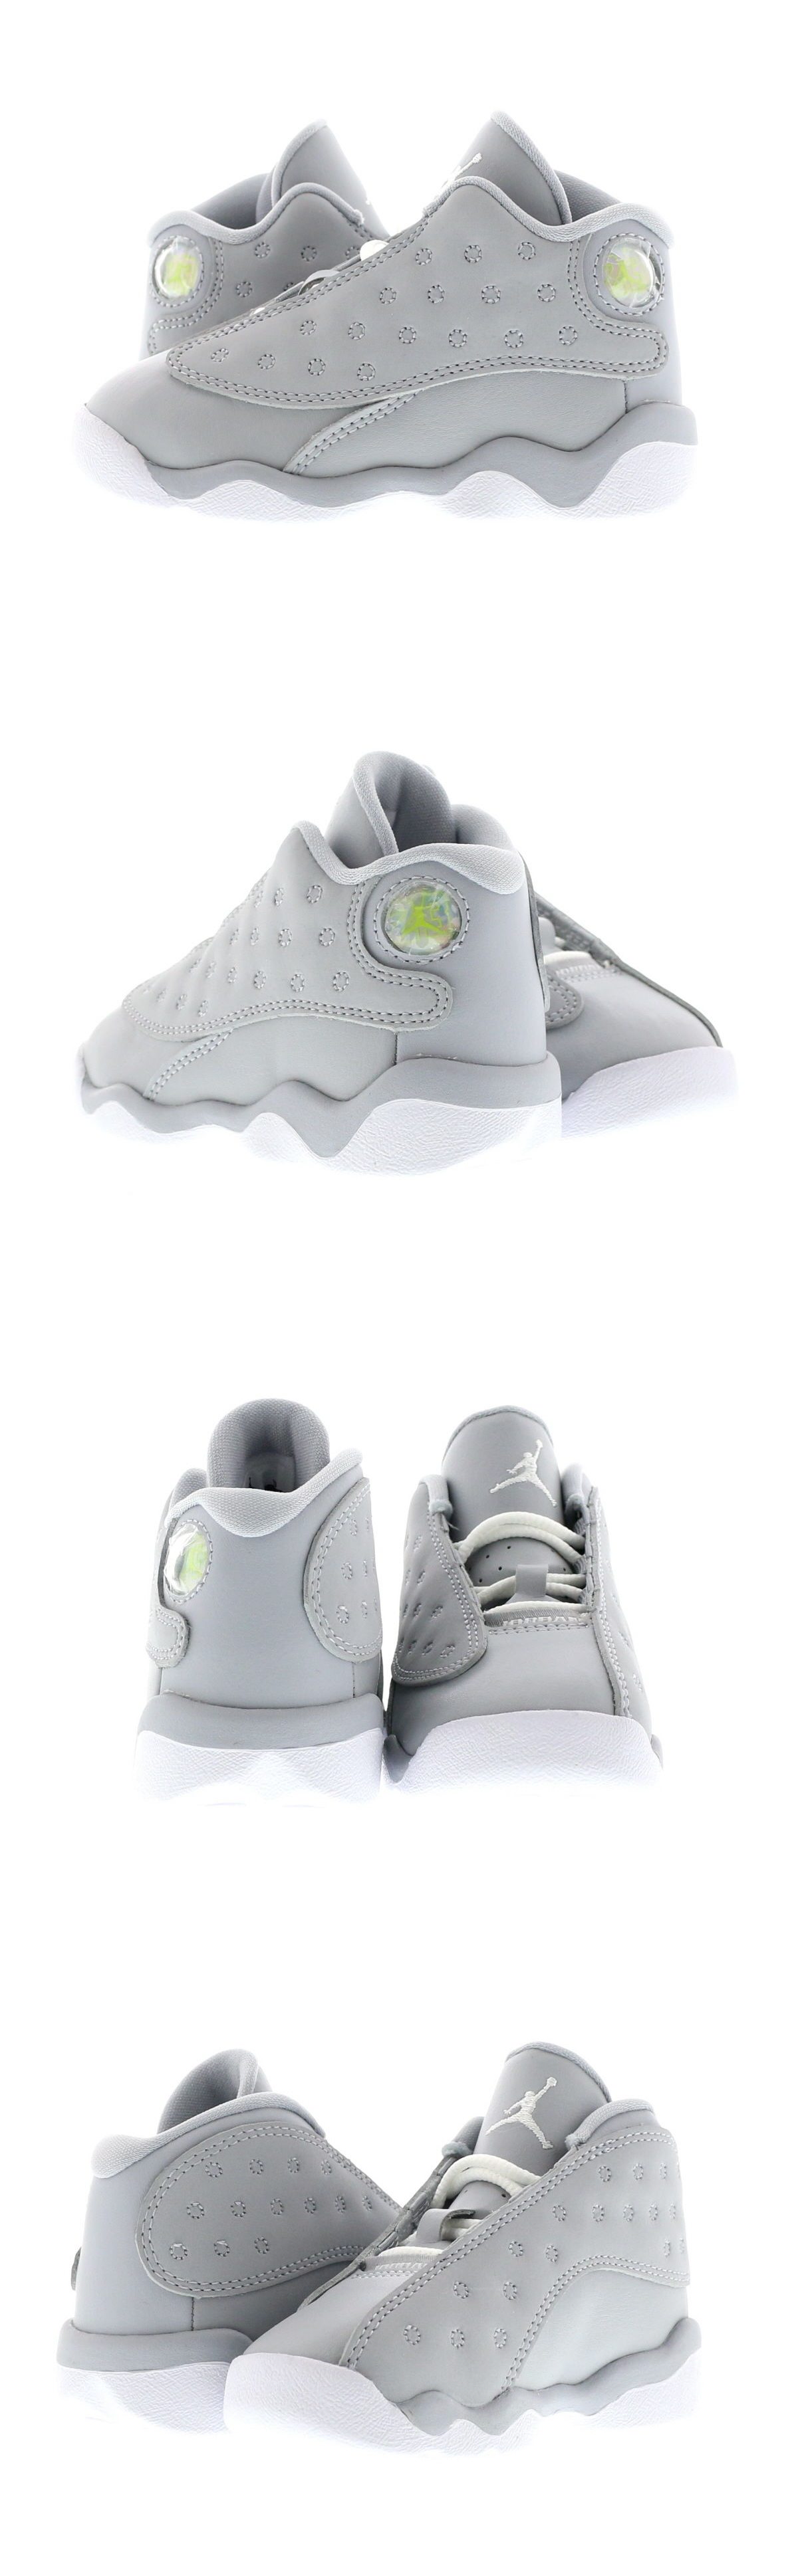 11f8962c33bf Baby Shoes 147285  Infant (Td) Air Jordan 13 Retro Wolf Grey White-Pink  684802-018 -  BUY IT NOW ONLY   50 on eBay!